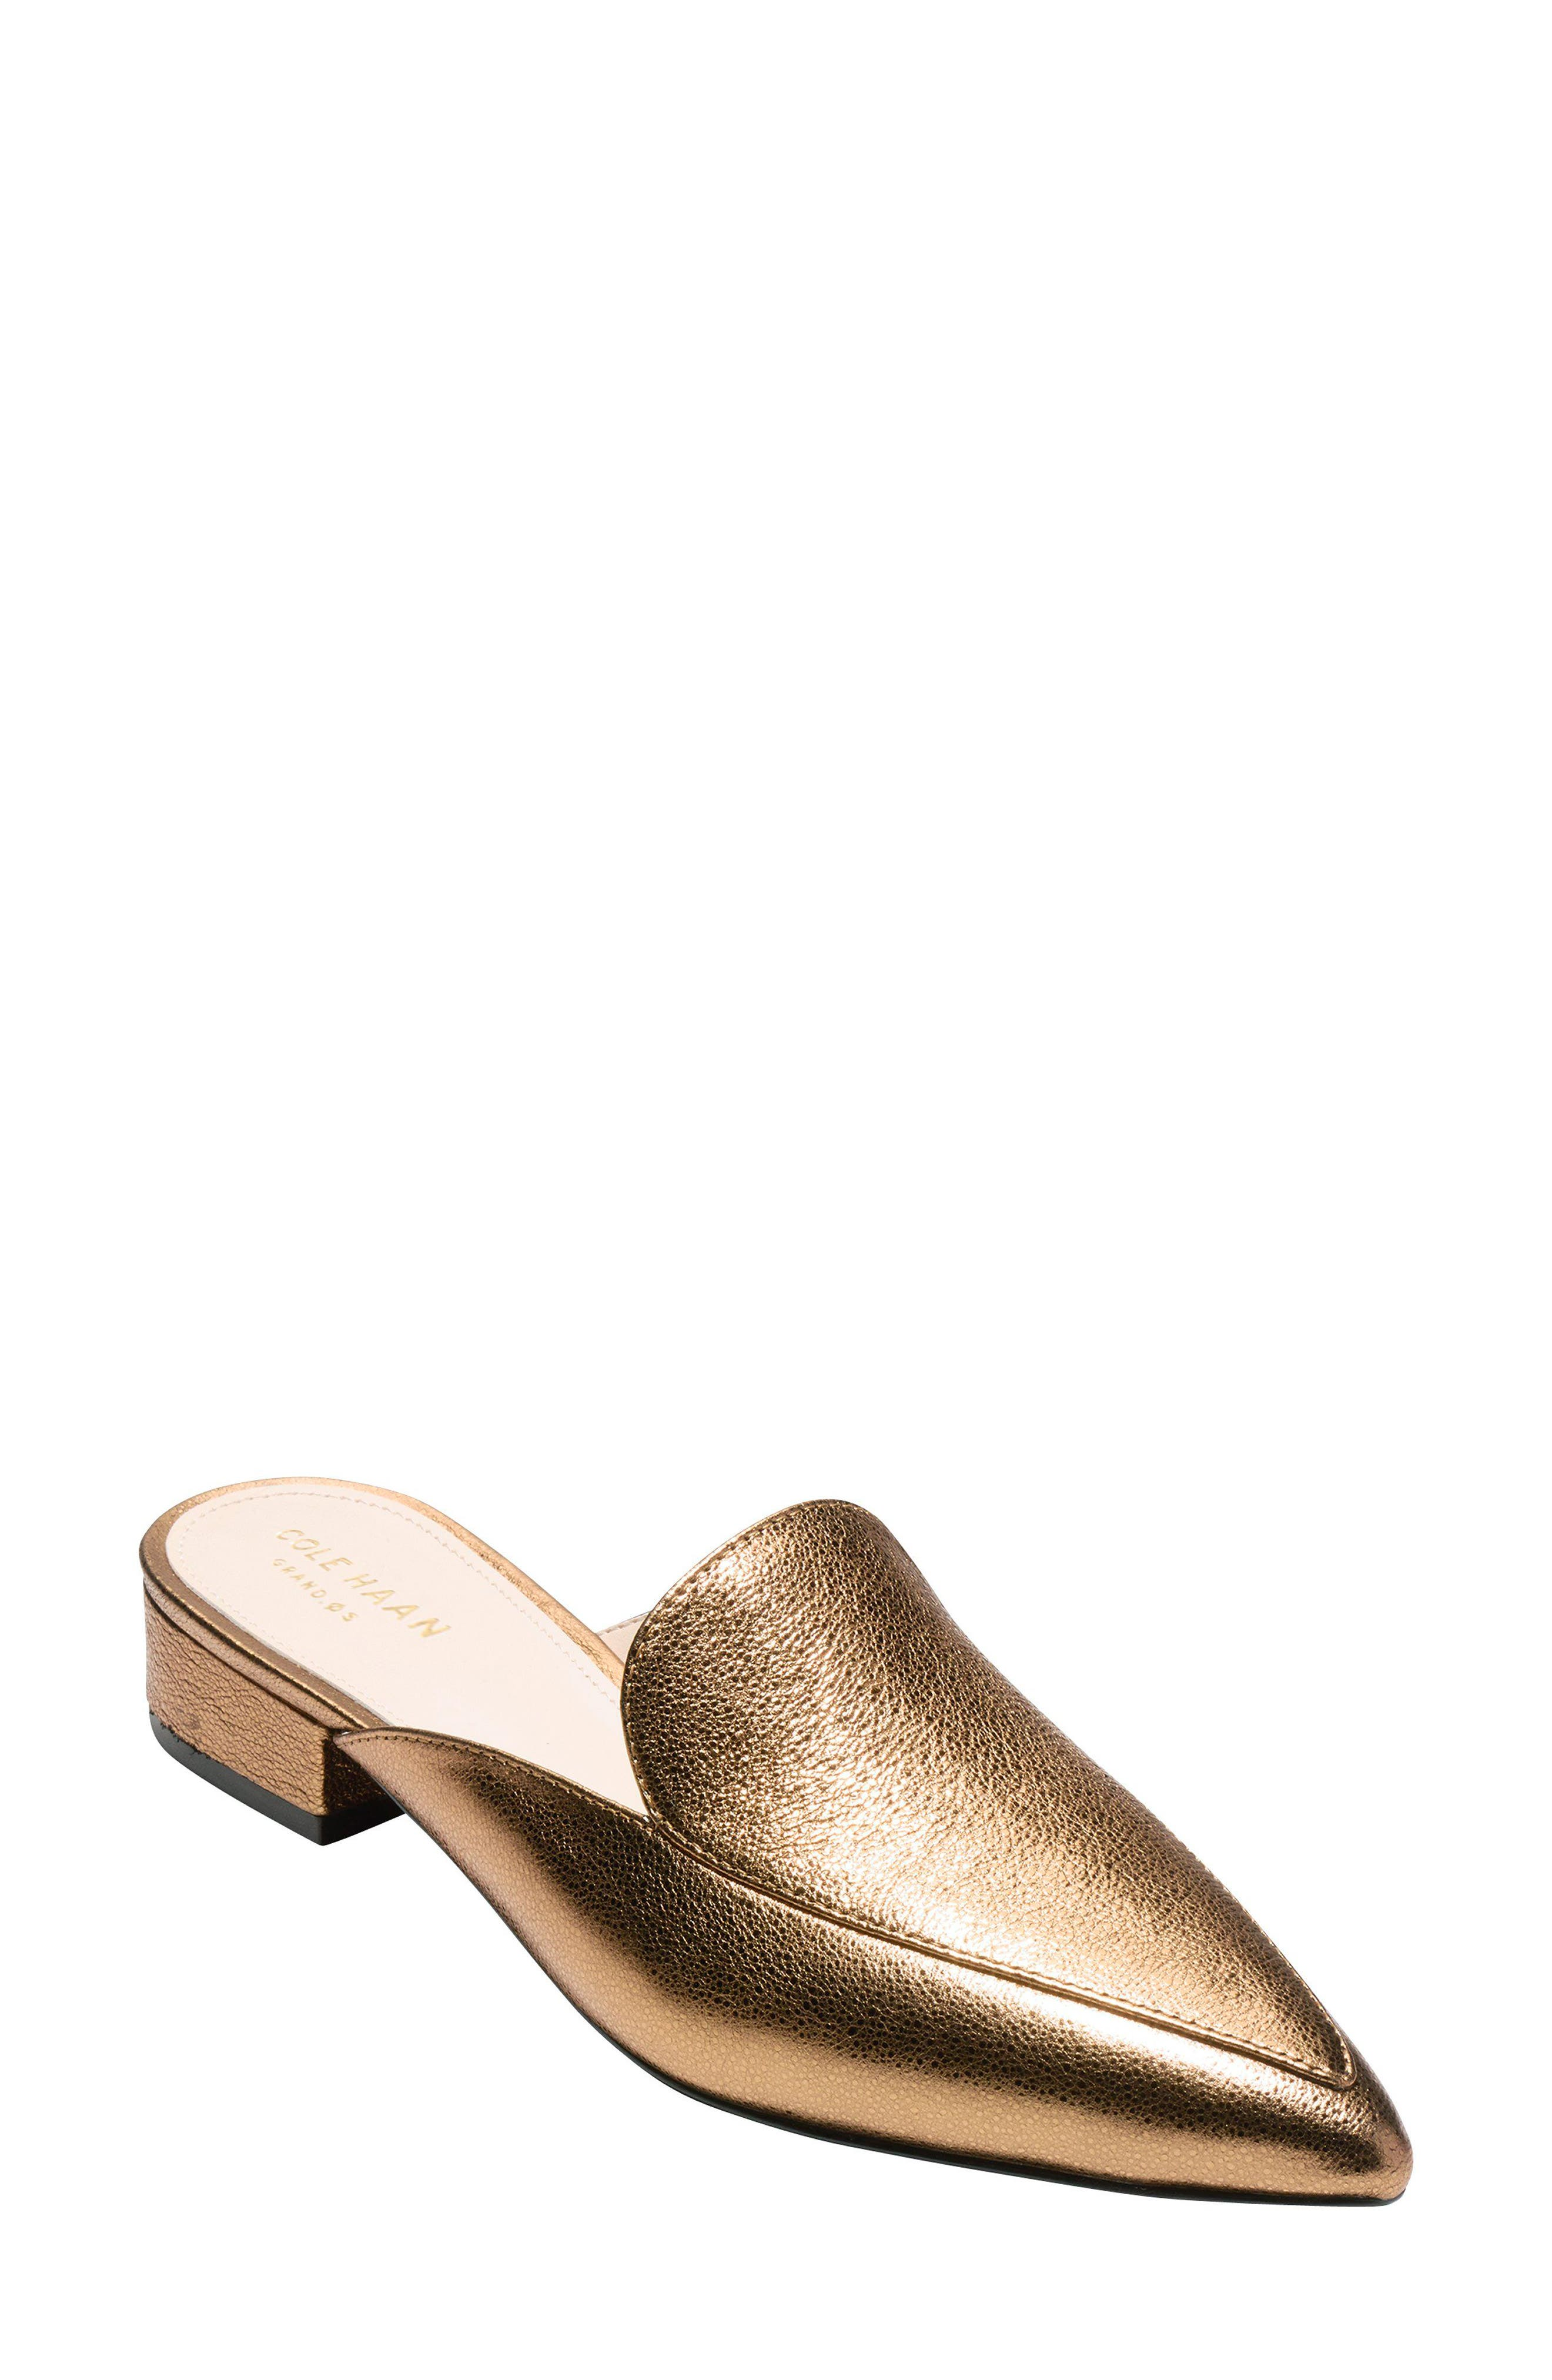 Main Image - Cole Haan Piper Loafer Mule (Women)